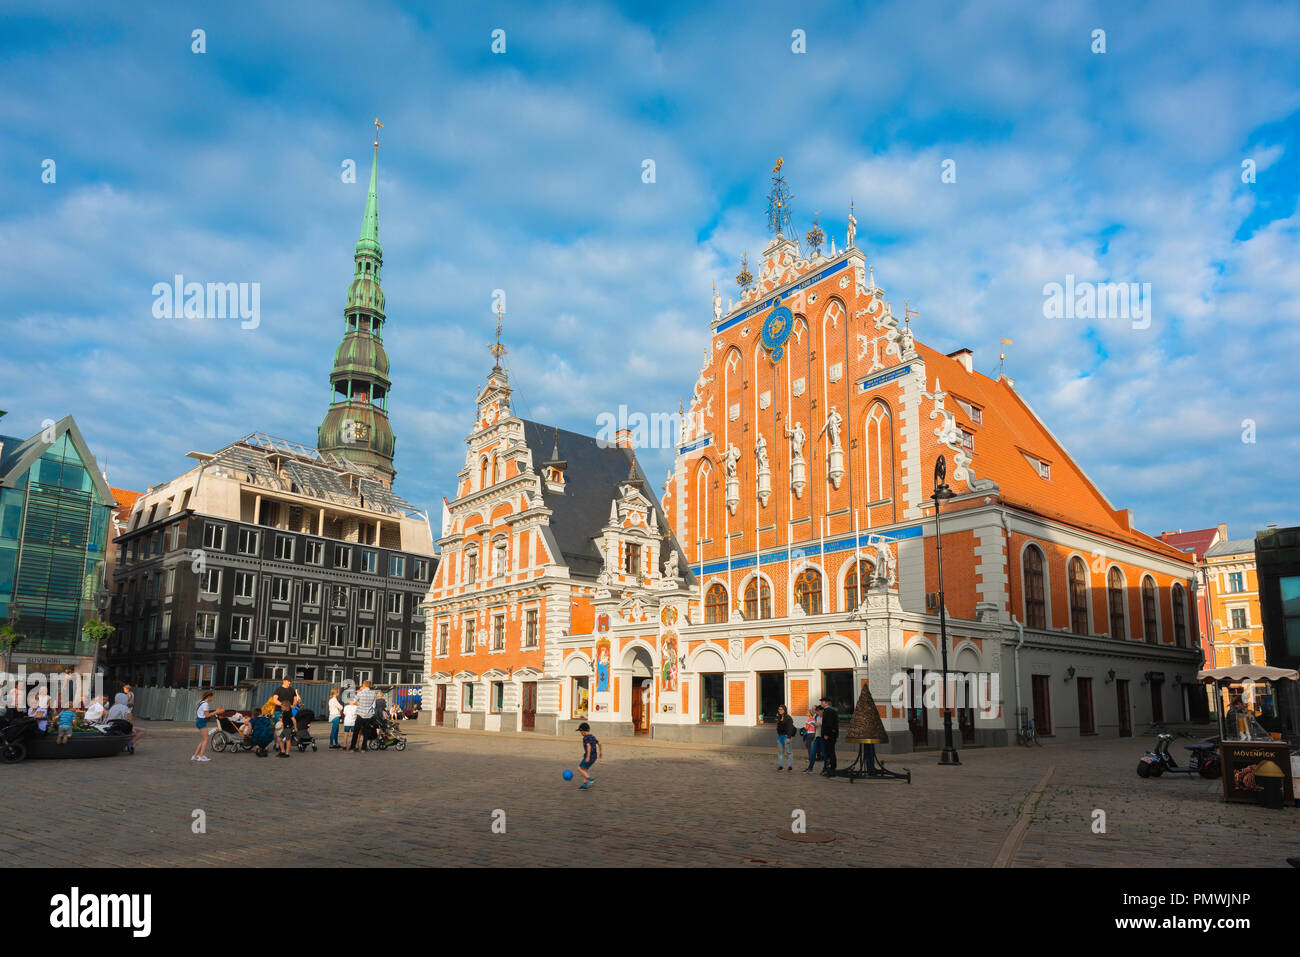 Riga Ratslaukums, view of Ratslaukums Square with the House Of The Blackheads illuminated at sunset, Old Riga, Latvia. - Stock Image